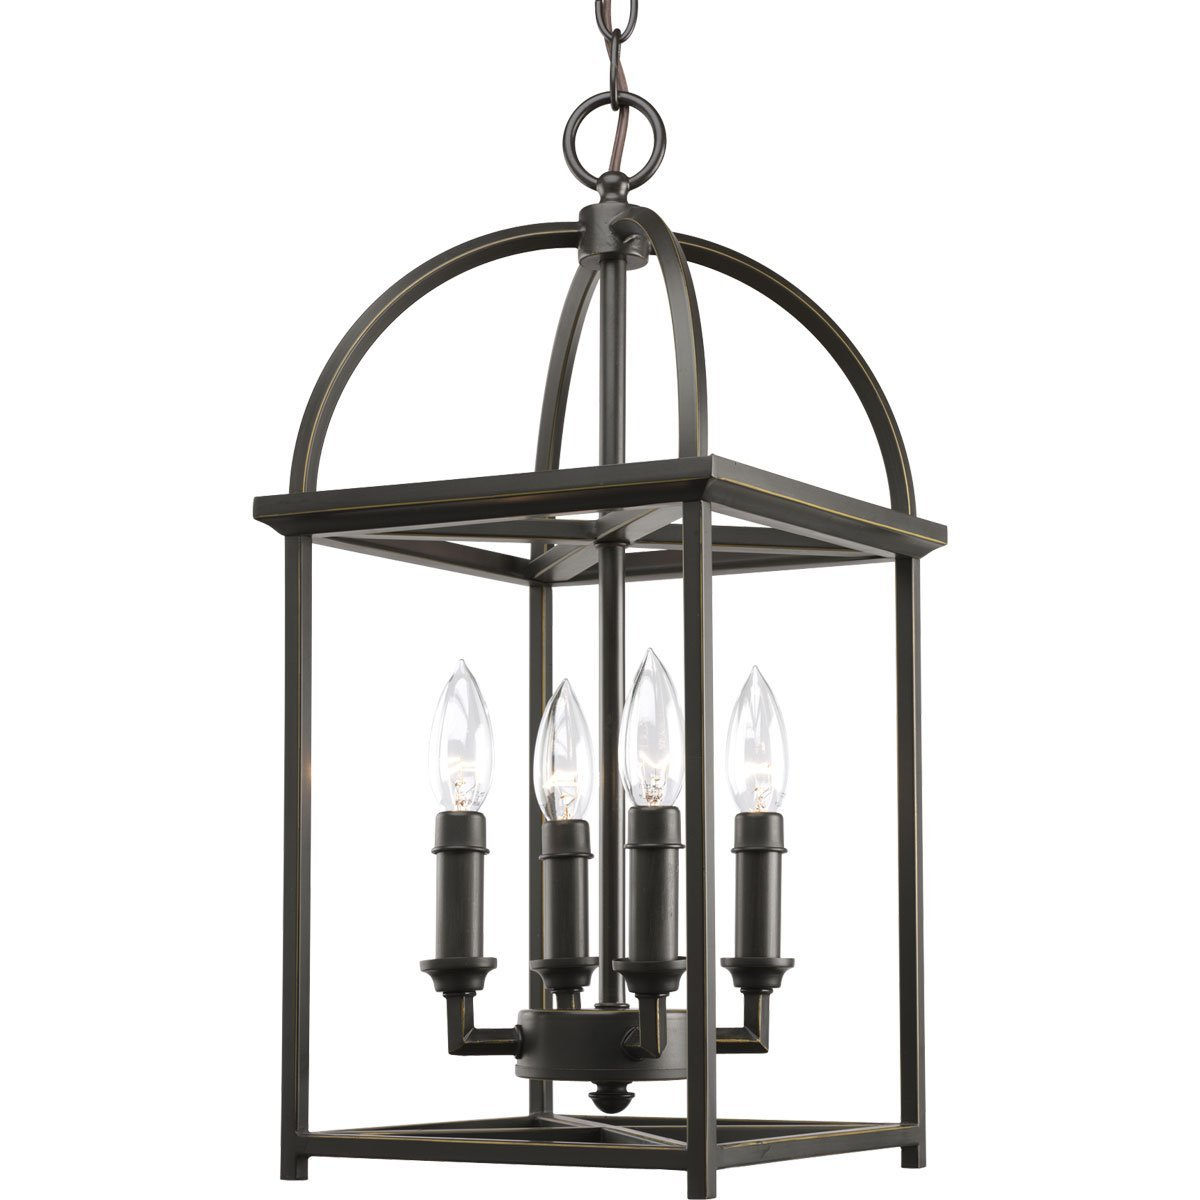 Large Foyer Hanging Lantern : American retro led chandelier black wrought iron lamp